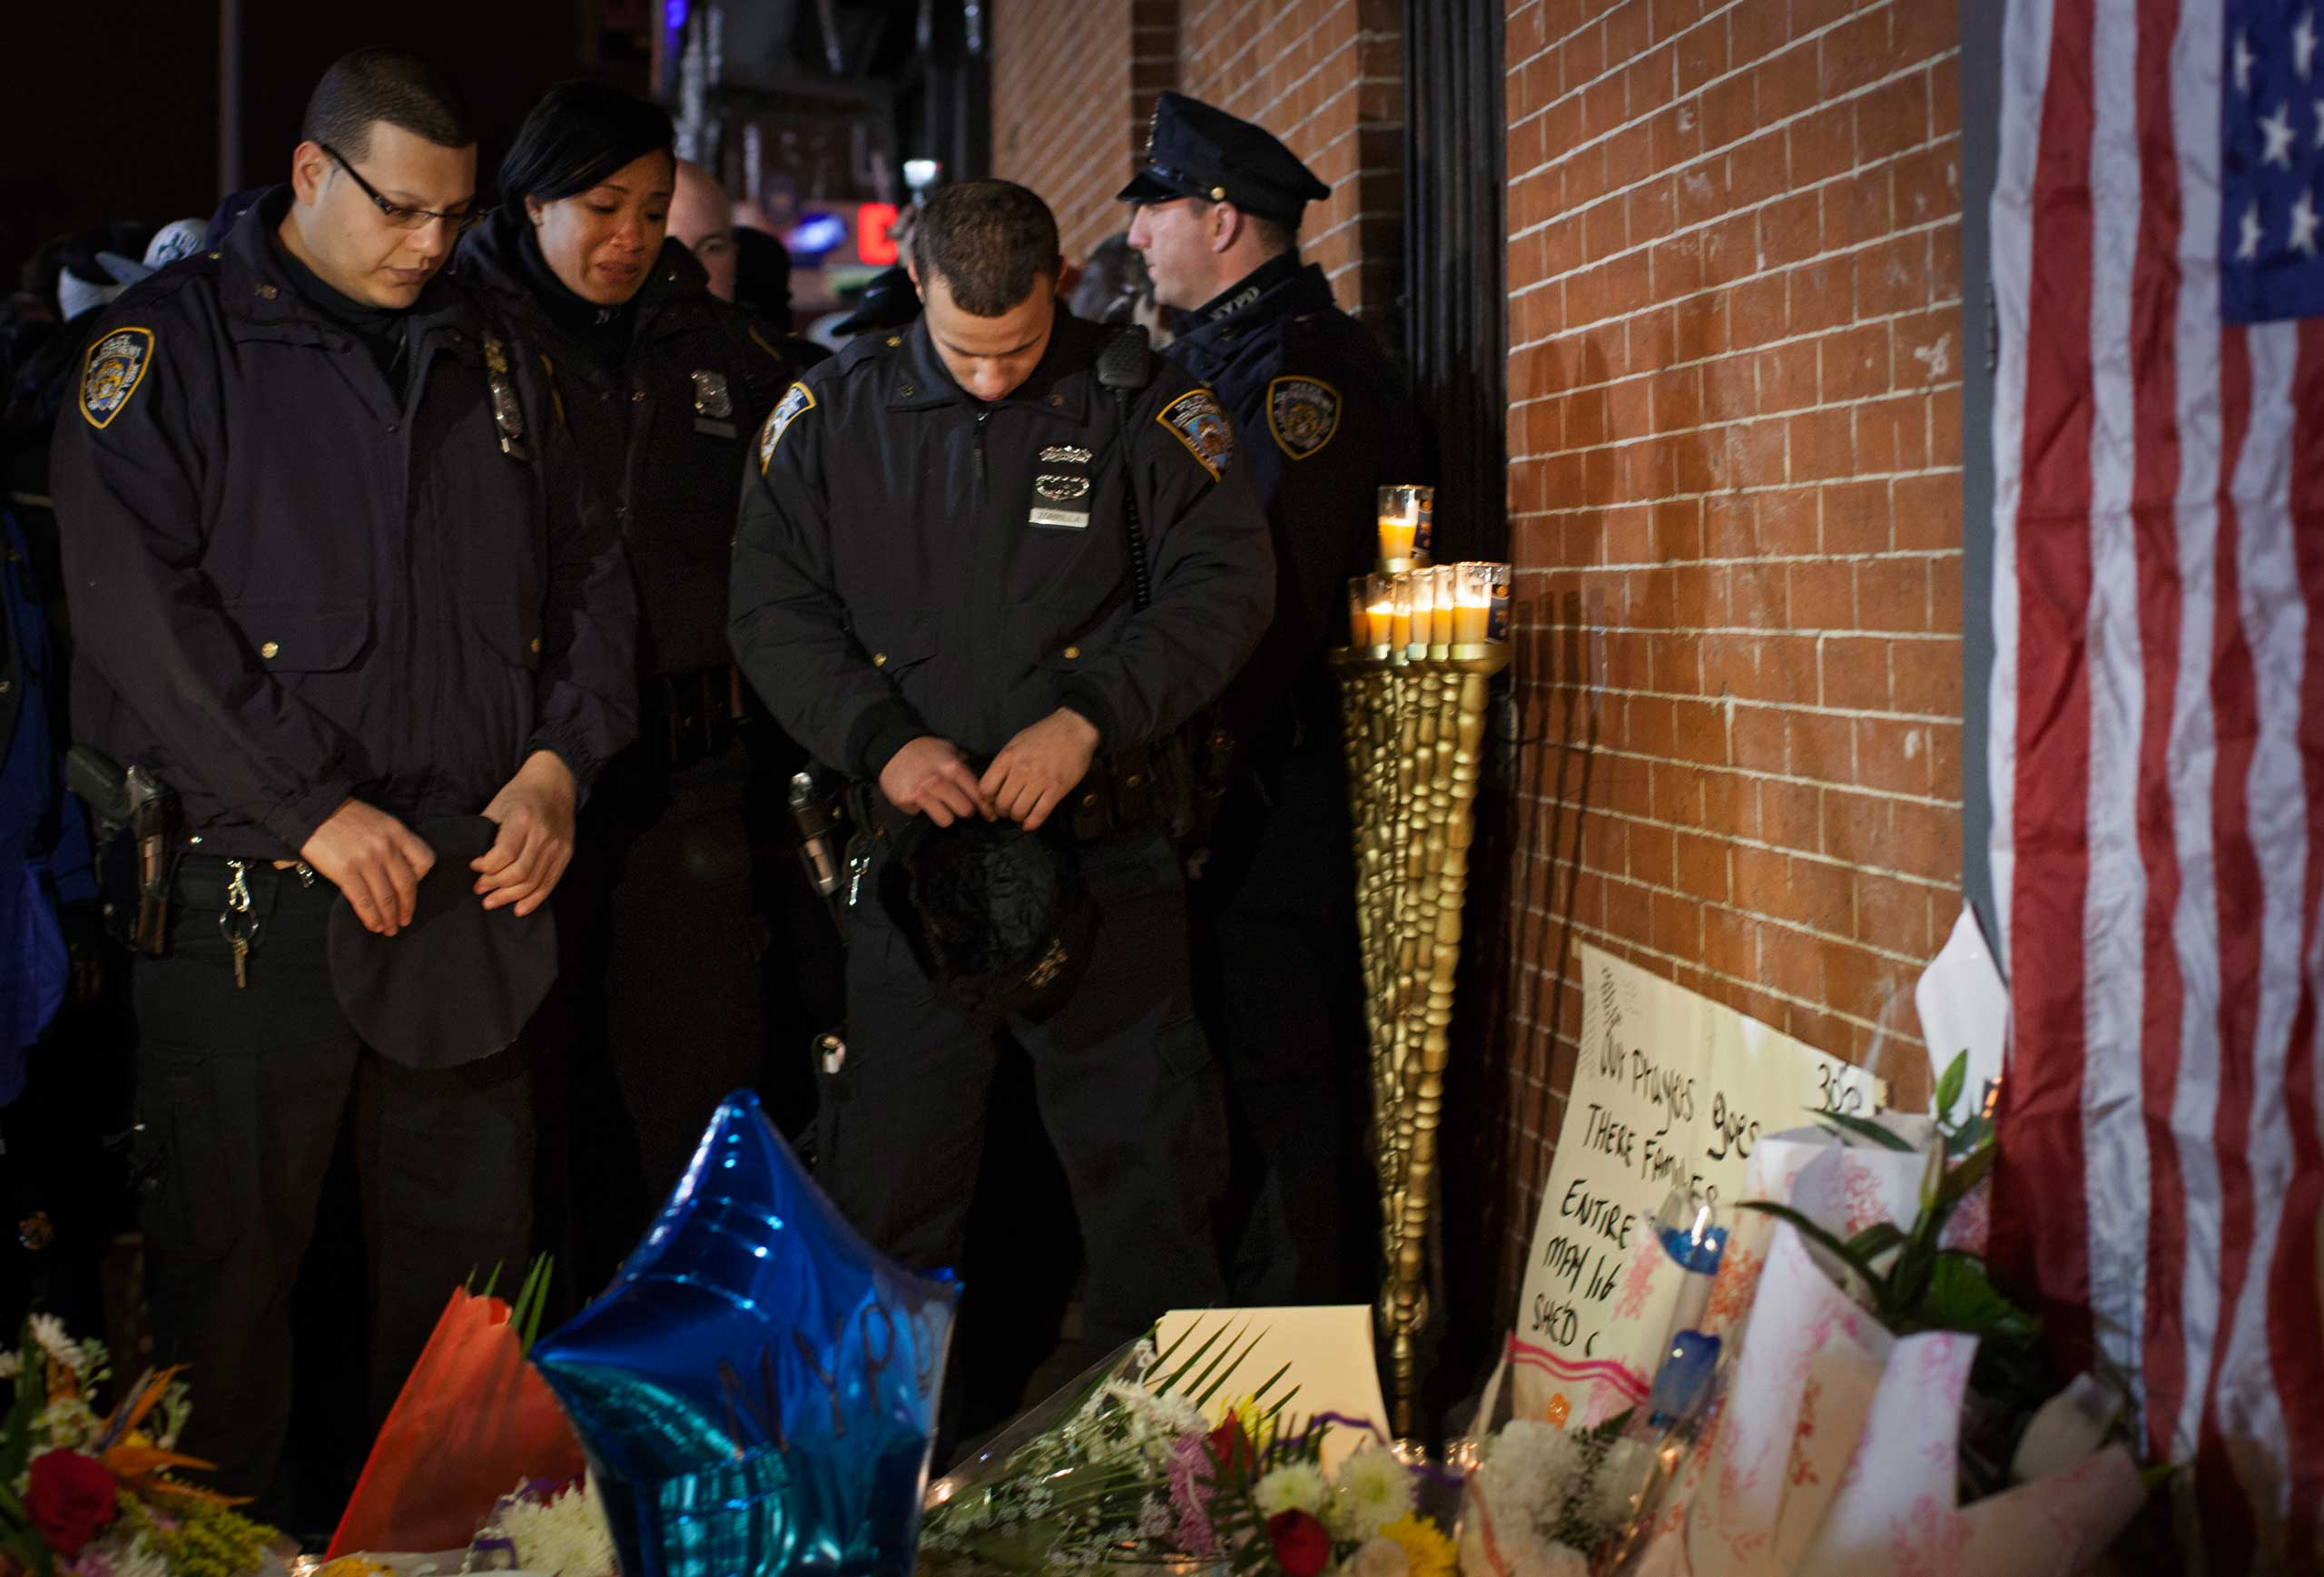 Police officers pause in front of a memorial for two police officers who were killed in Brooklyn on Dec. 21, 2014.